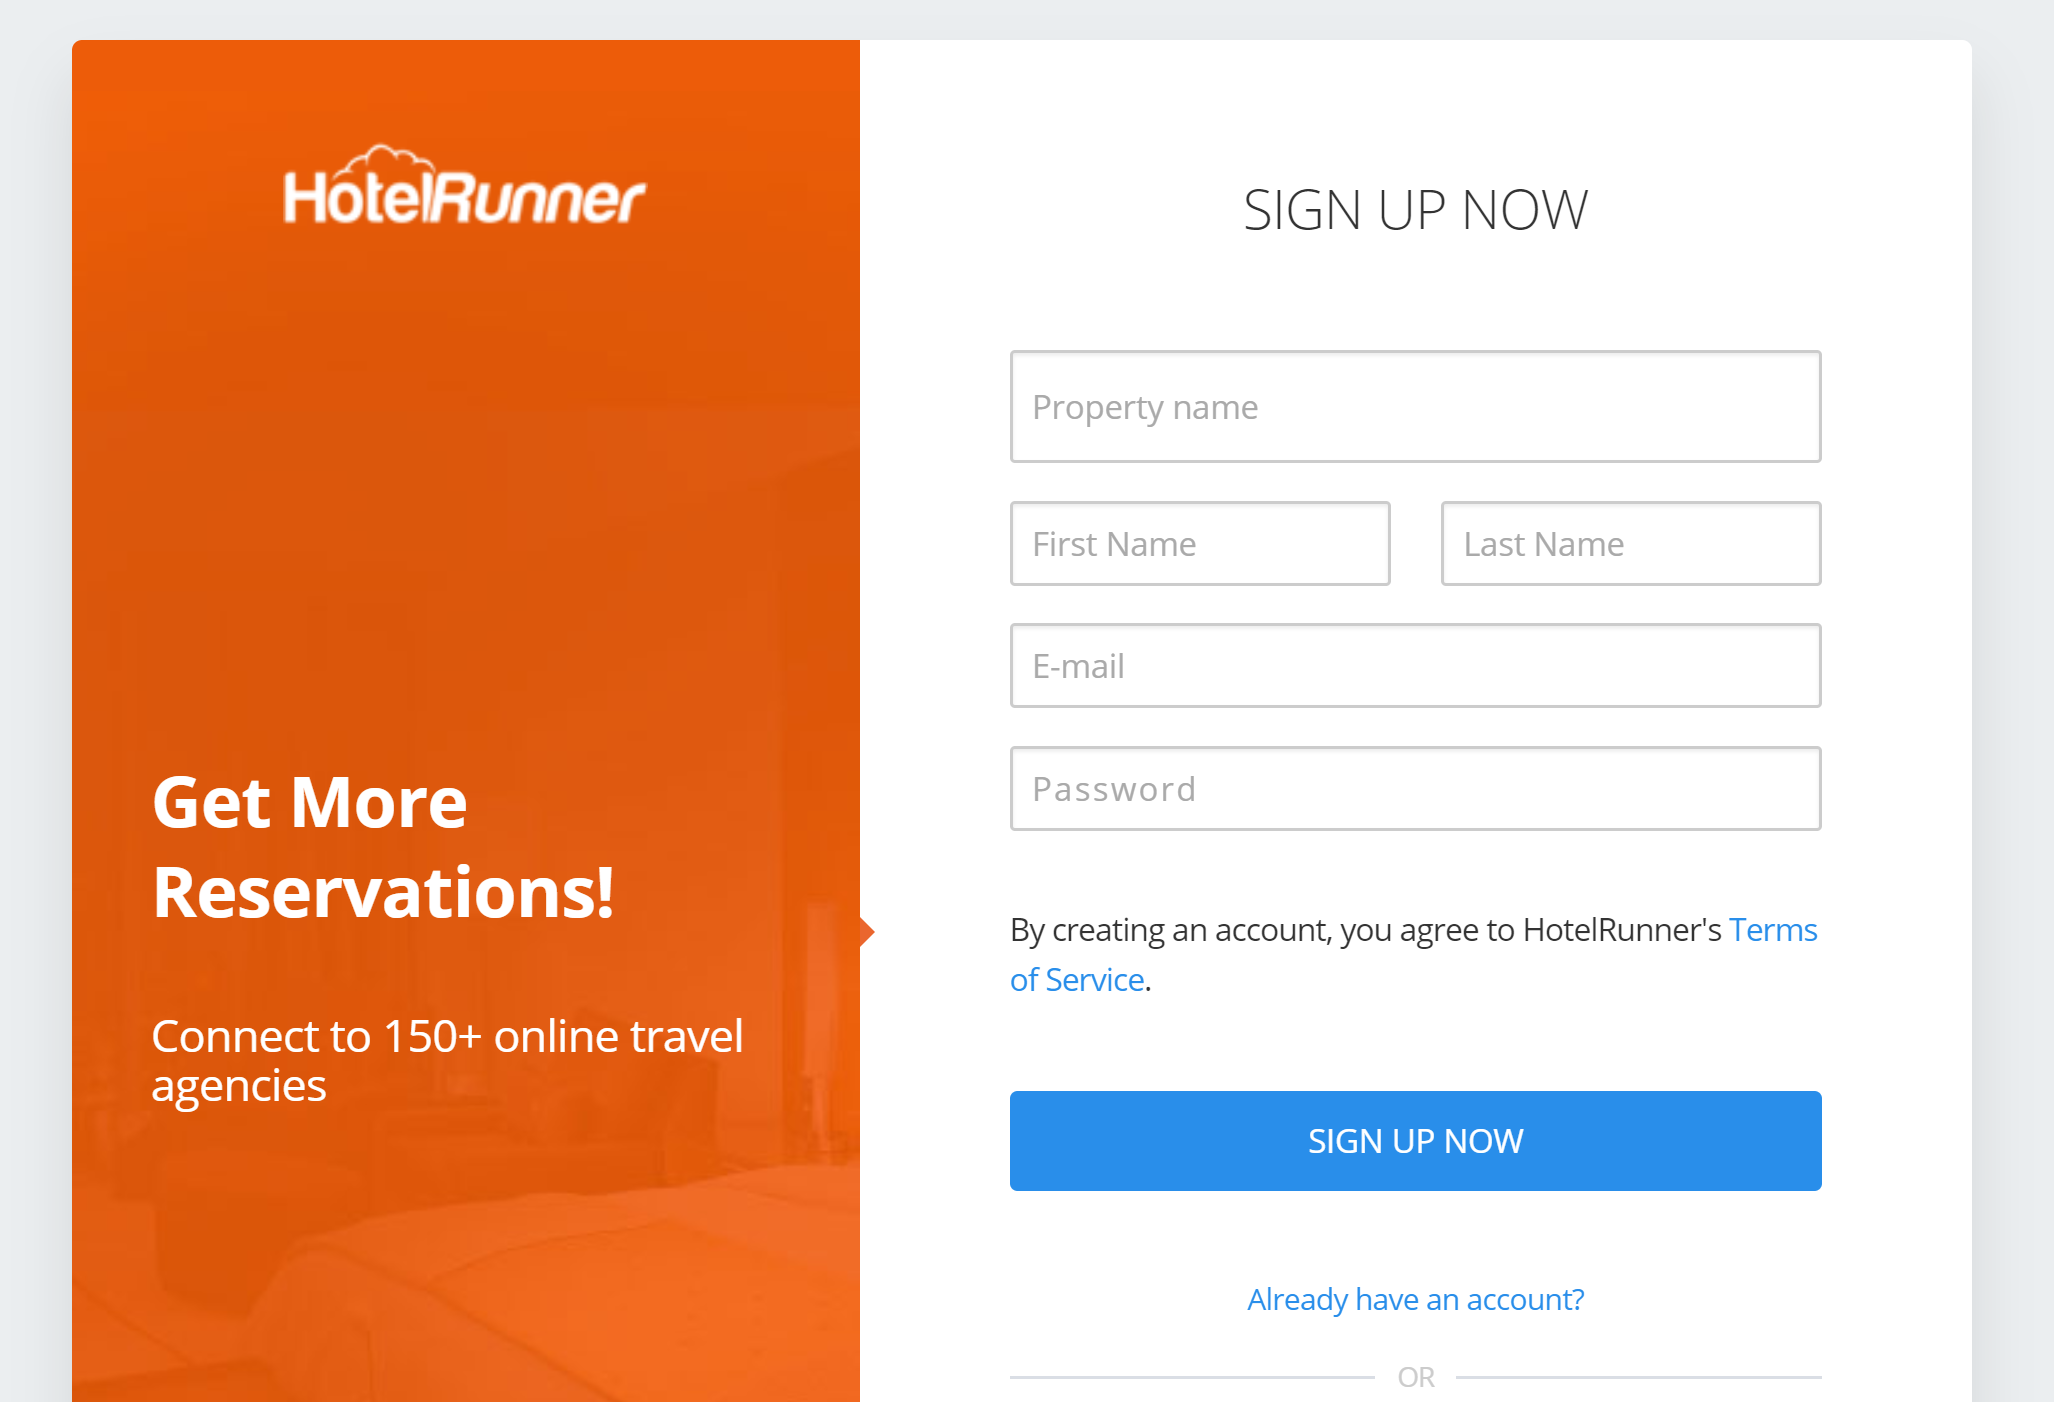 How to create an account HotelRunner.com